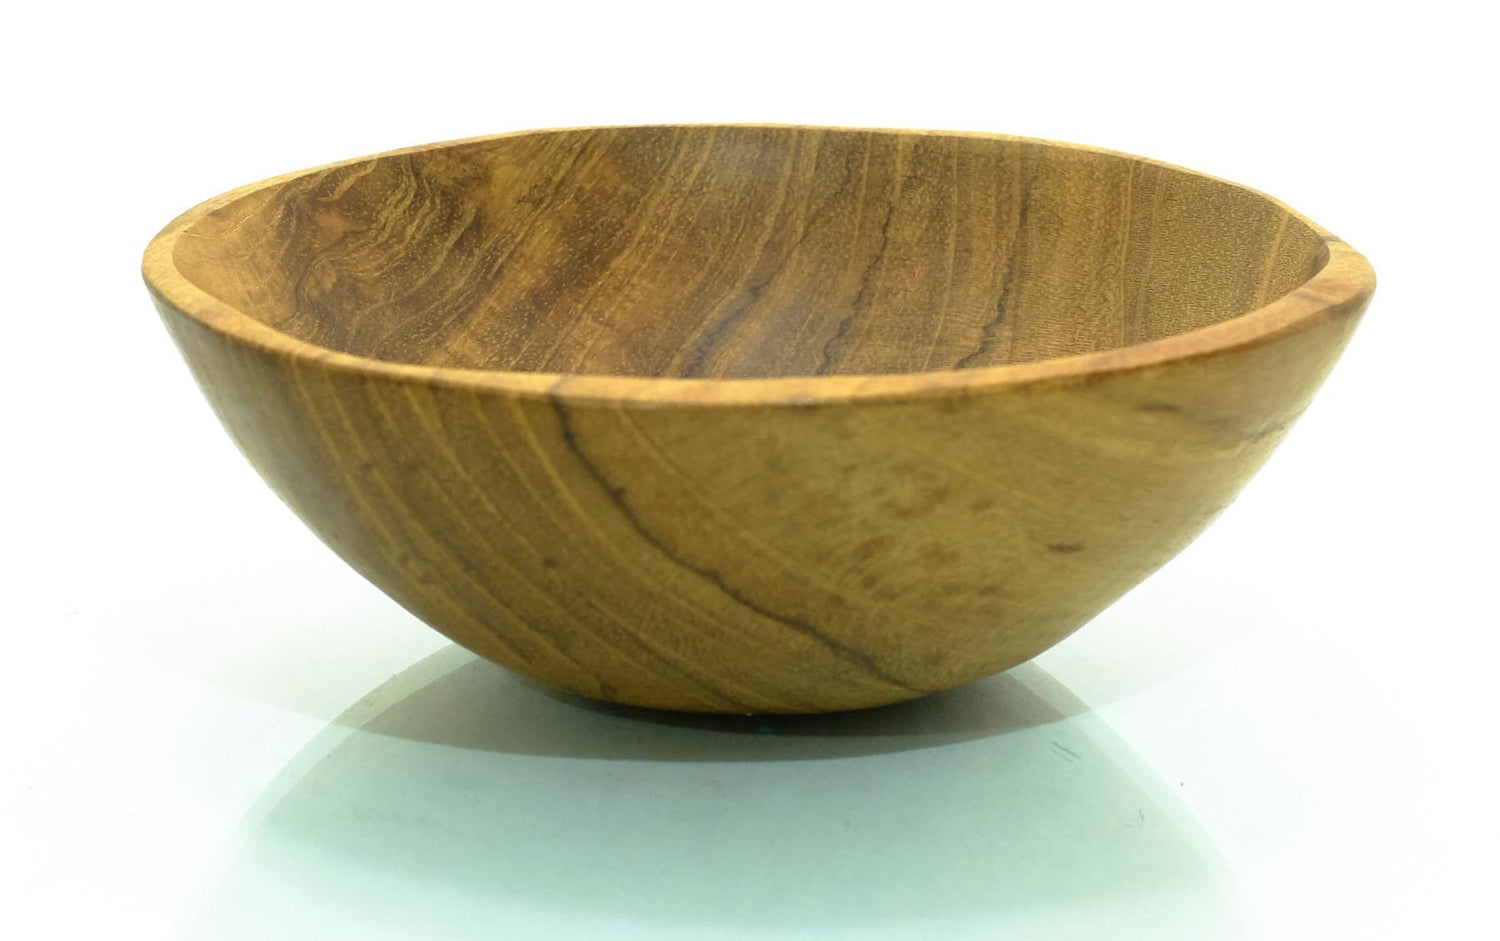 Rustic Teak Wood Bowls - 4 sizes Available